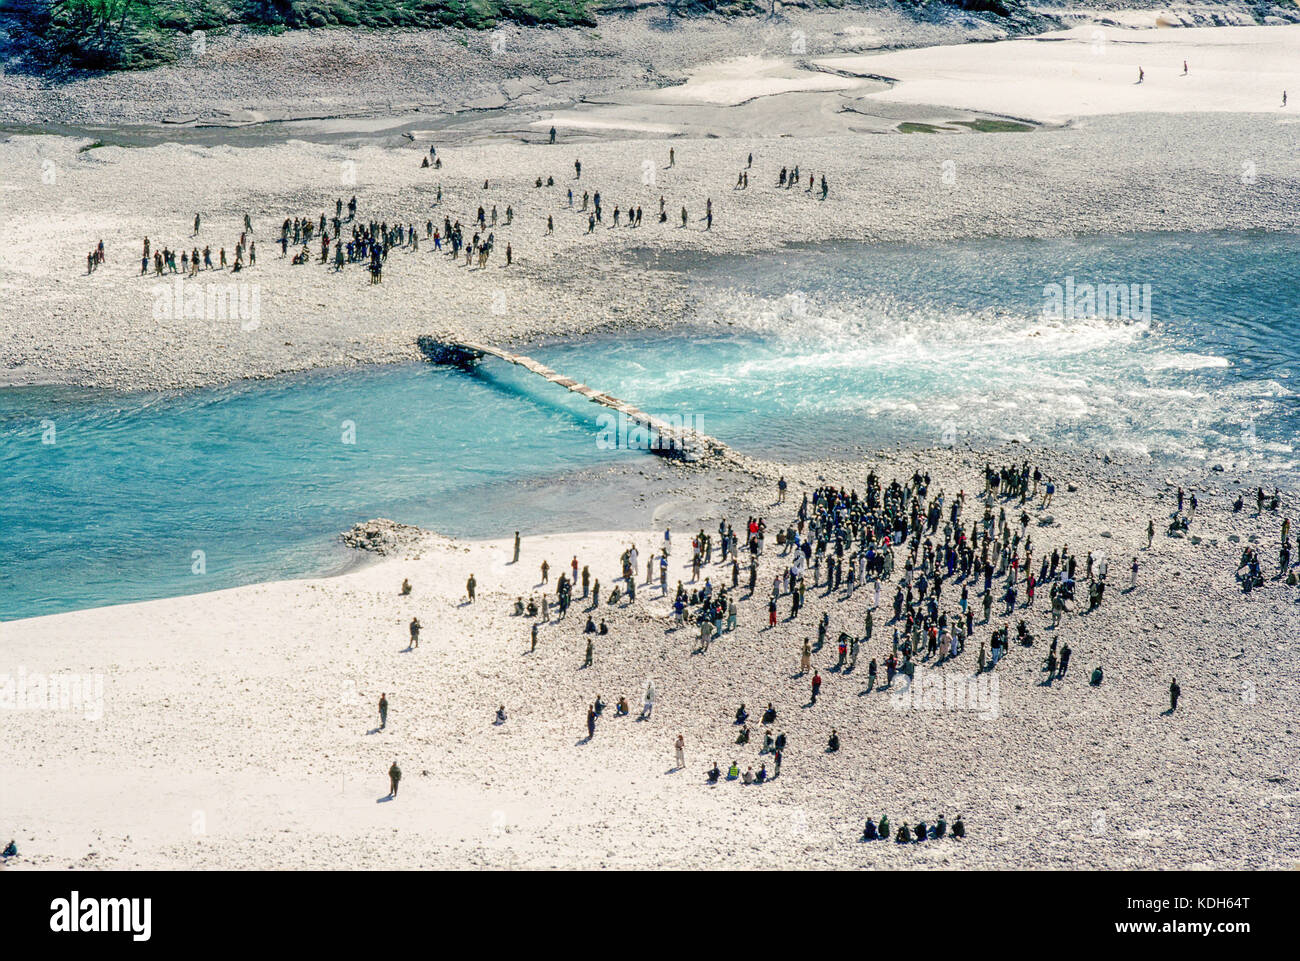 Upper Indus Valley near Skardu, Pakistan, 1990; Villagers gather on either side of a temporary bridge over the River - Stock Image